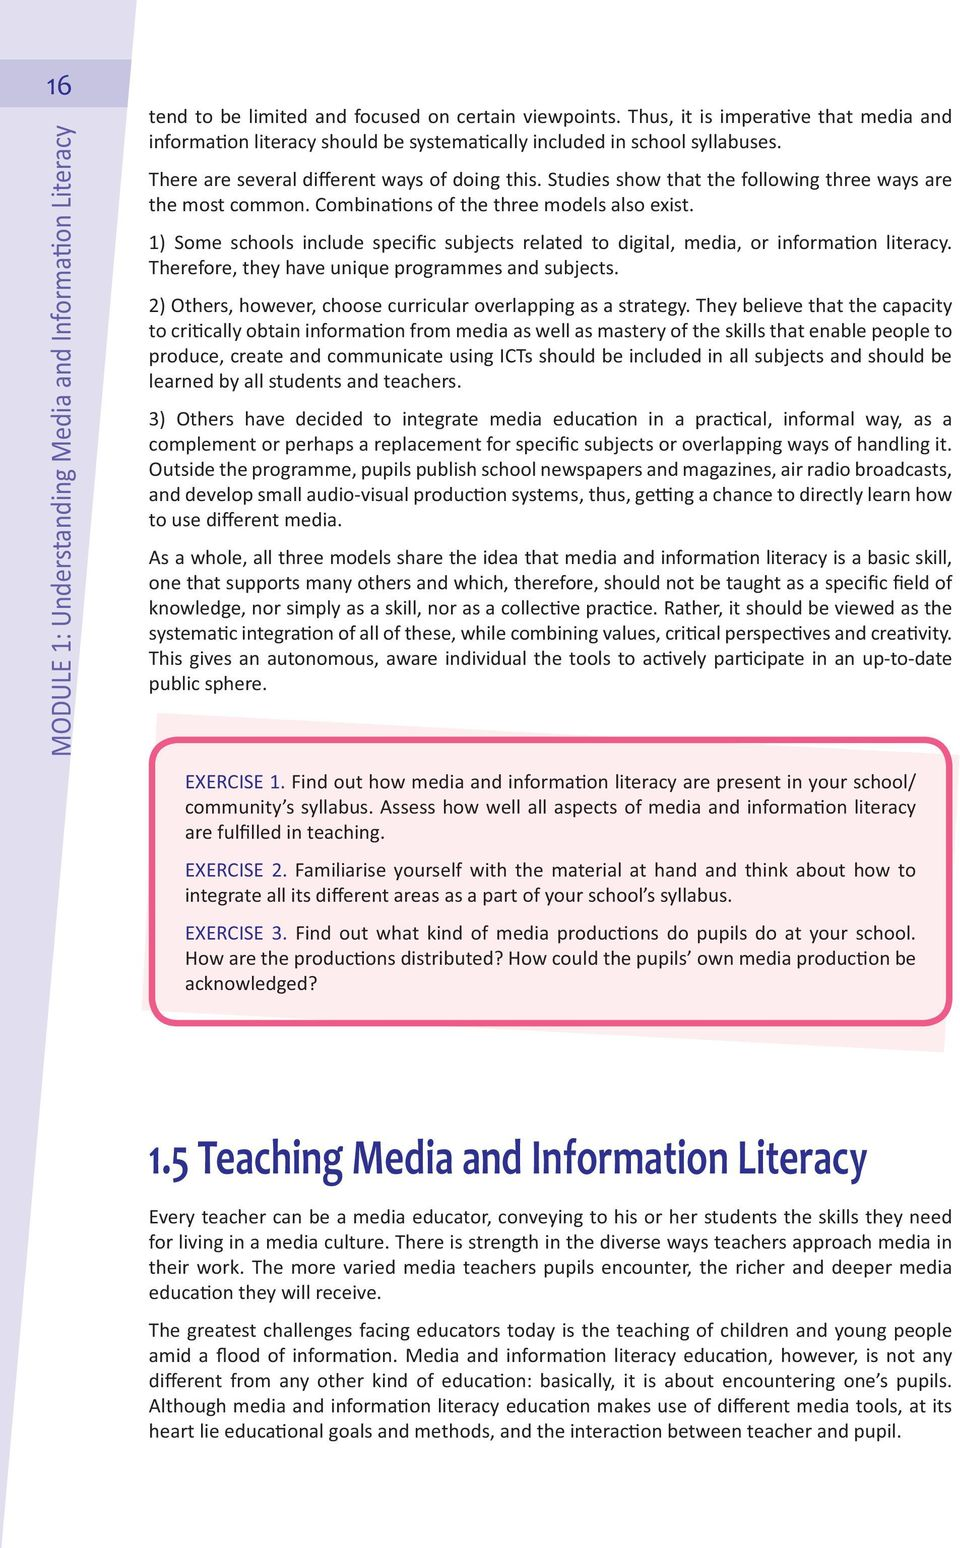 Studies show that the following three ways are the most common. Combina ons of the three models also exist. 1) Some schools include speci c subjects related to digital, media, or informa on literacy.